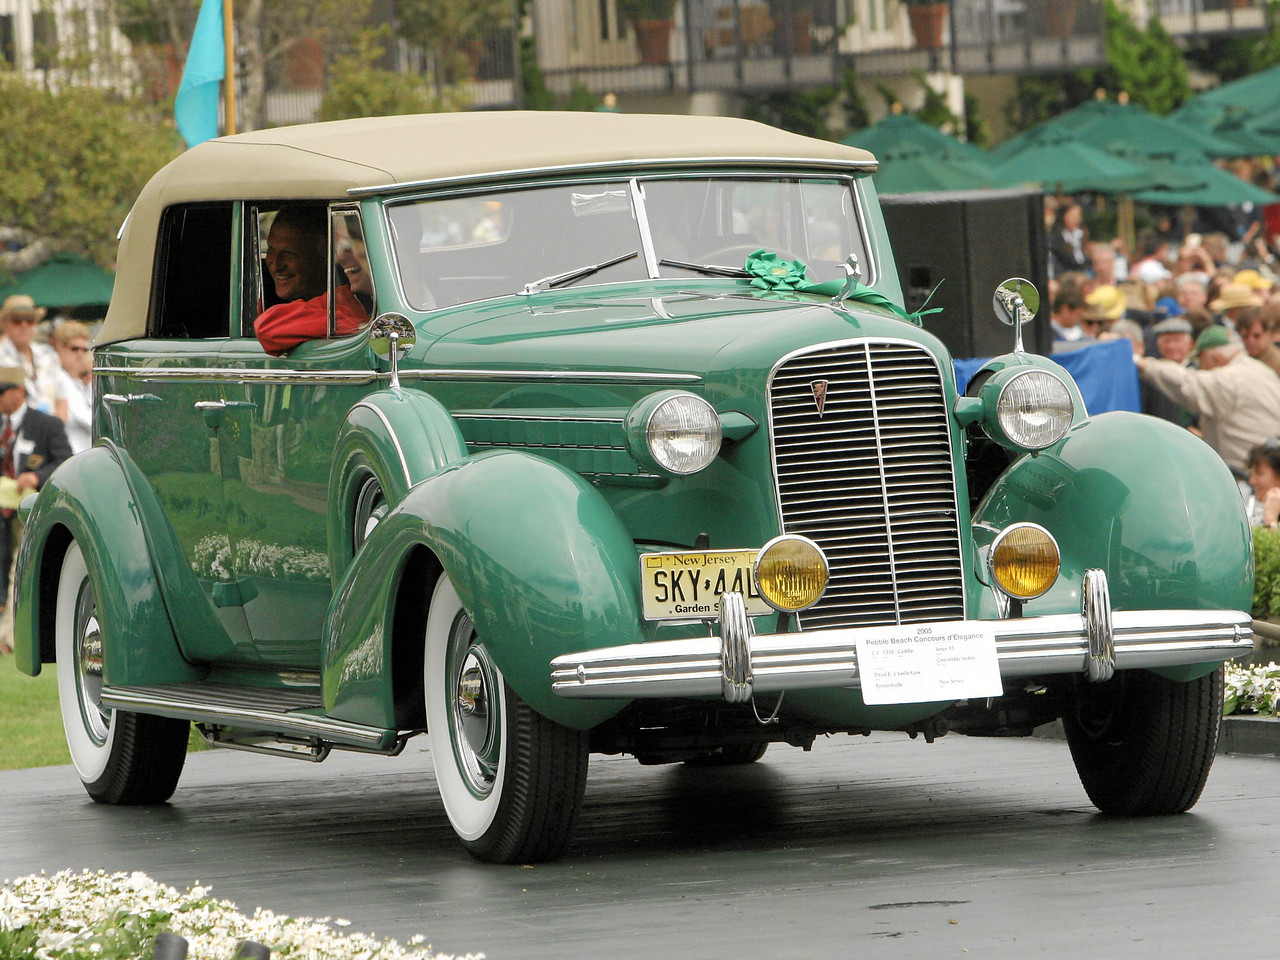 2nd Class C-1 (American Classic Open 1925-1941) 1936 Cadillac Series 85 Convertible Sedan owned by David and Linda Kane from Bernardsville, New Jersey